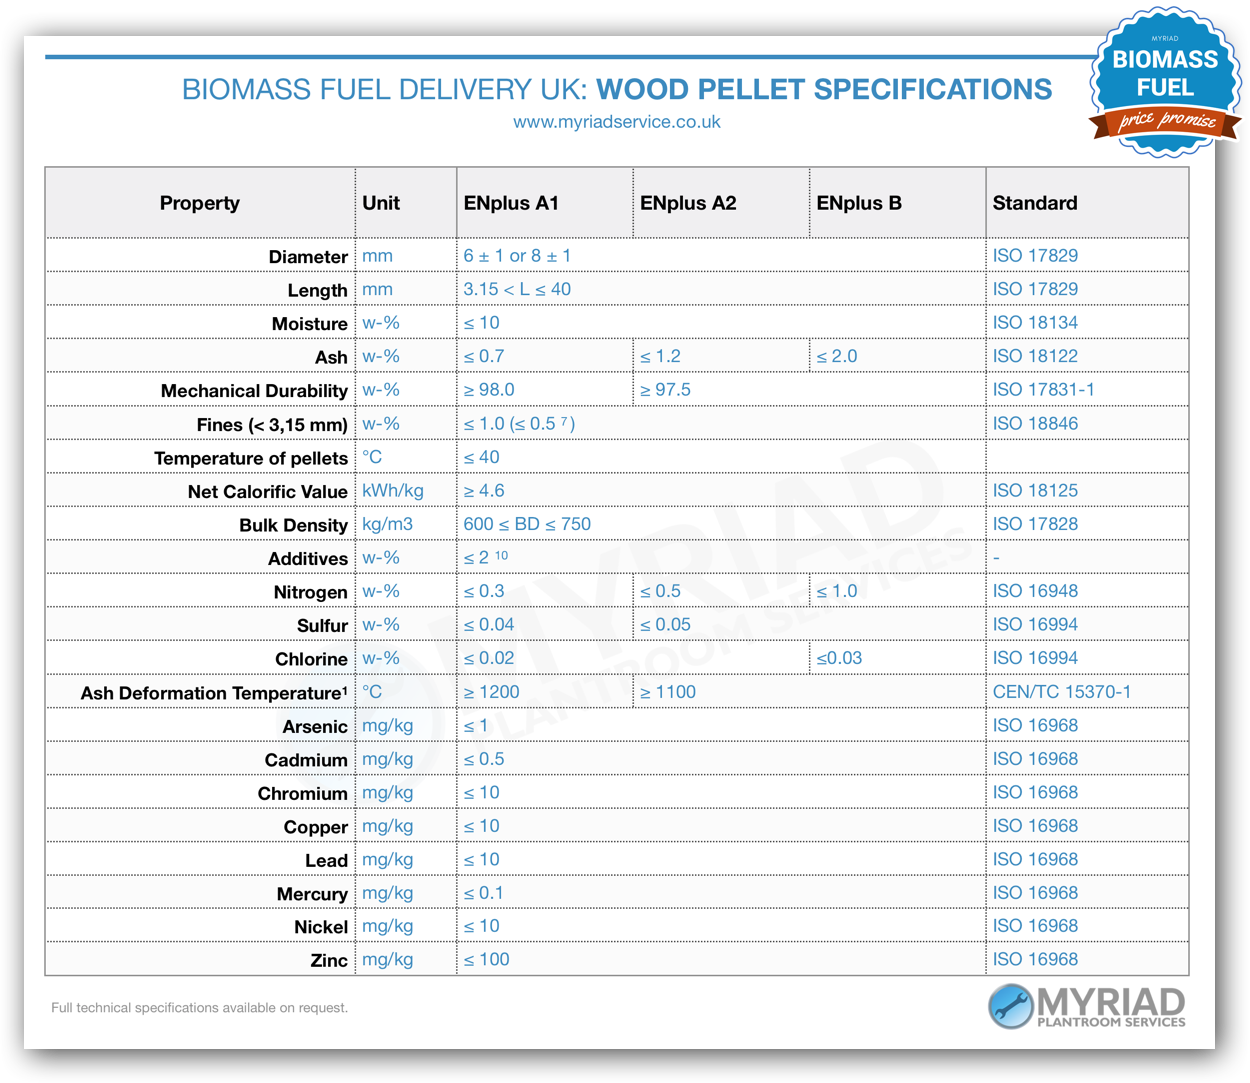 wood-pellet-specification-biomass-fuel-supplier-Myriad.png.png